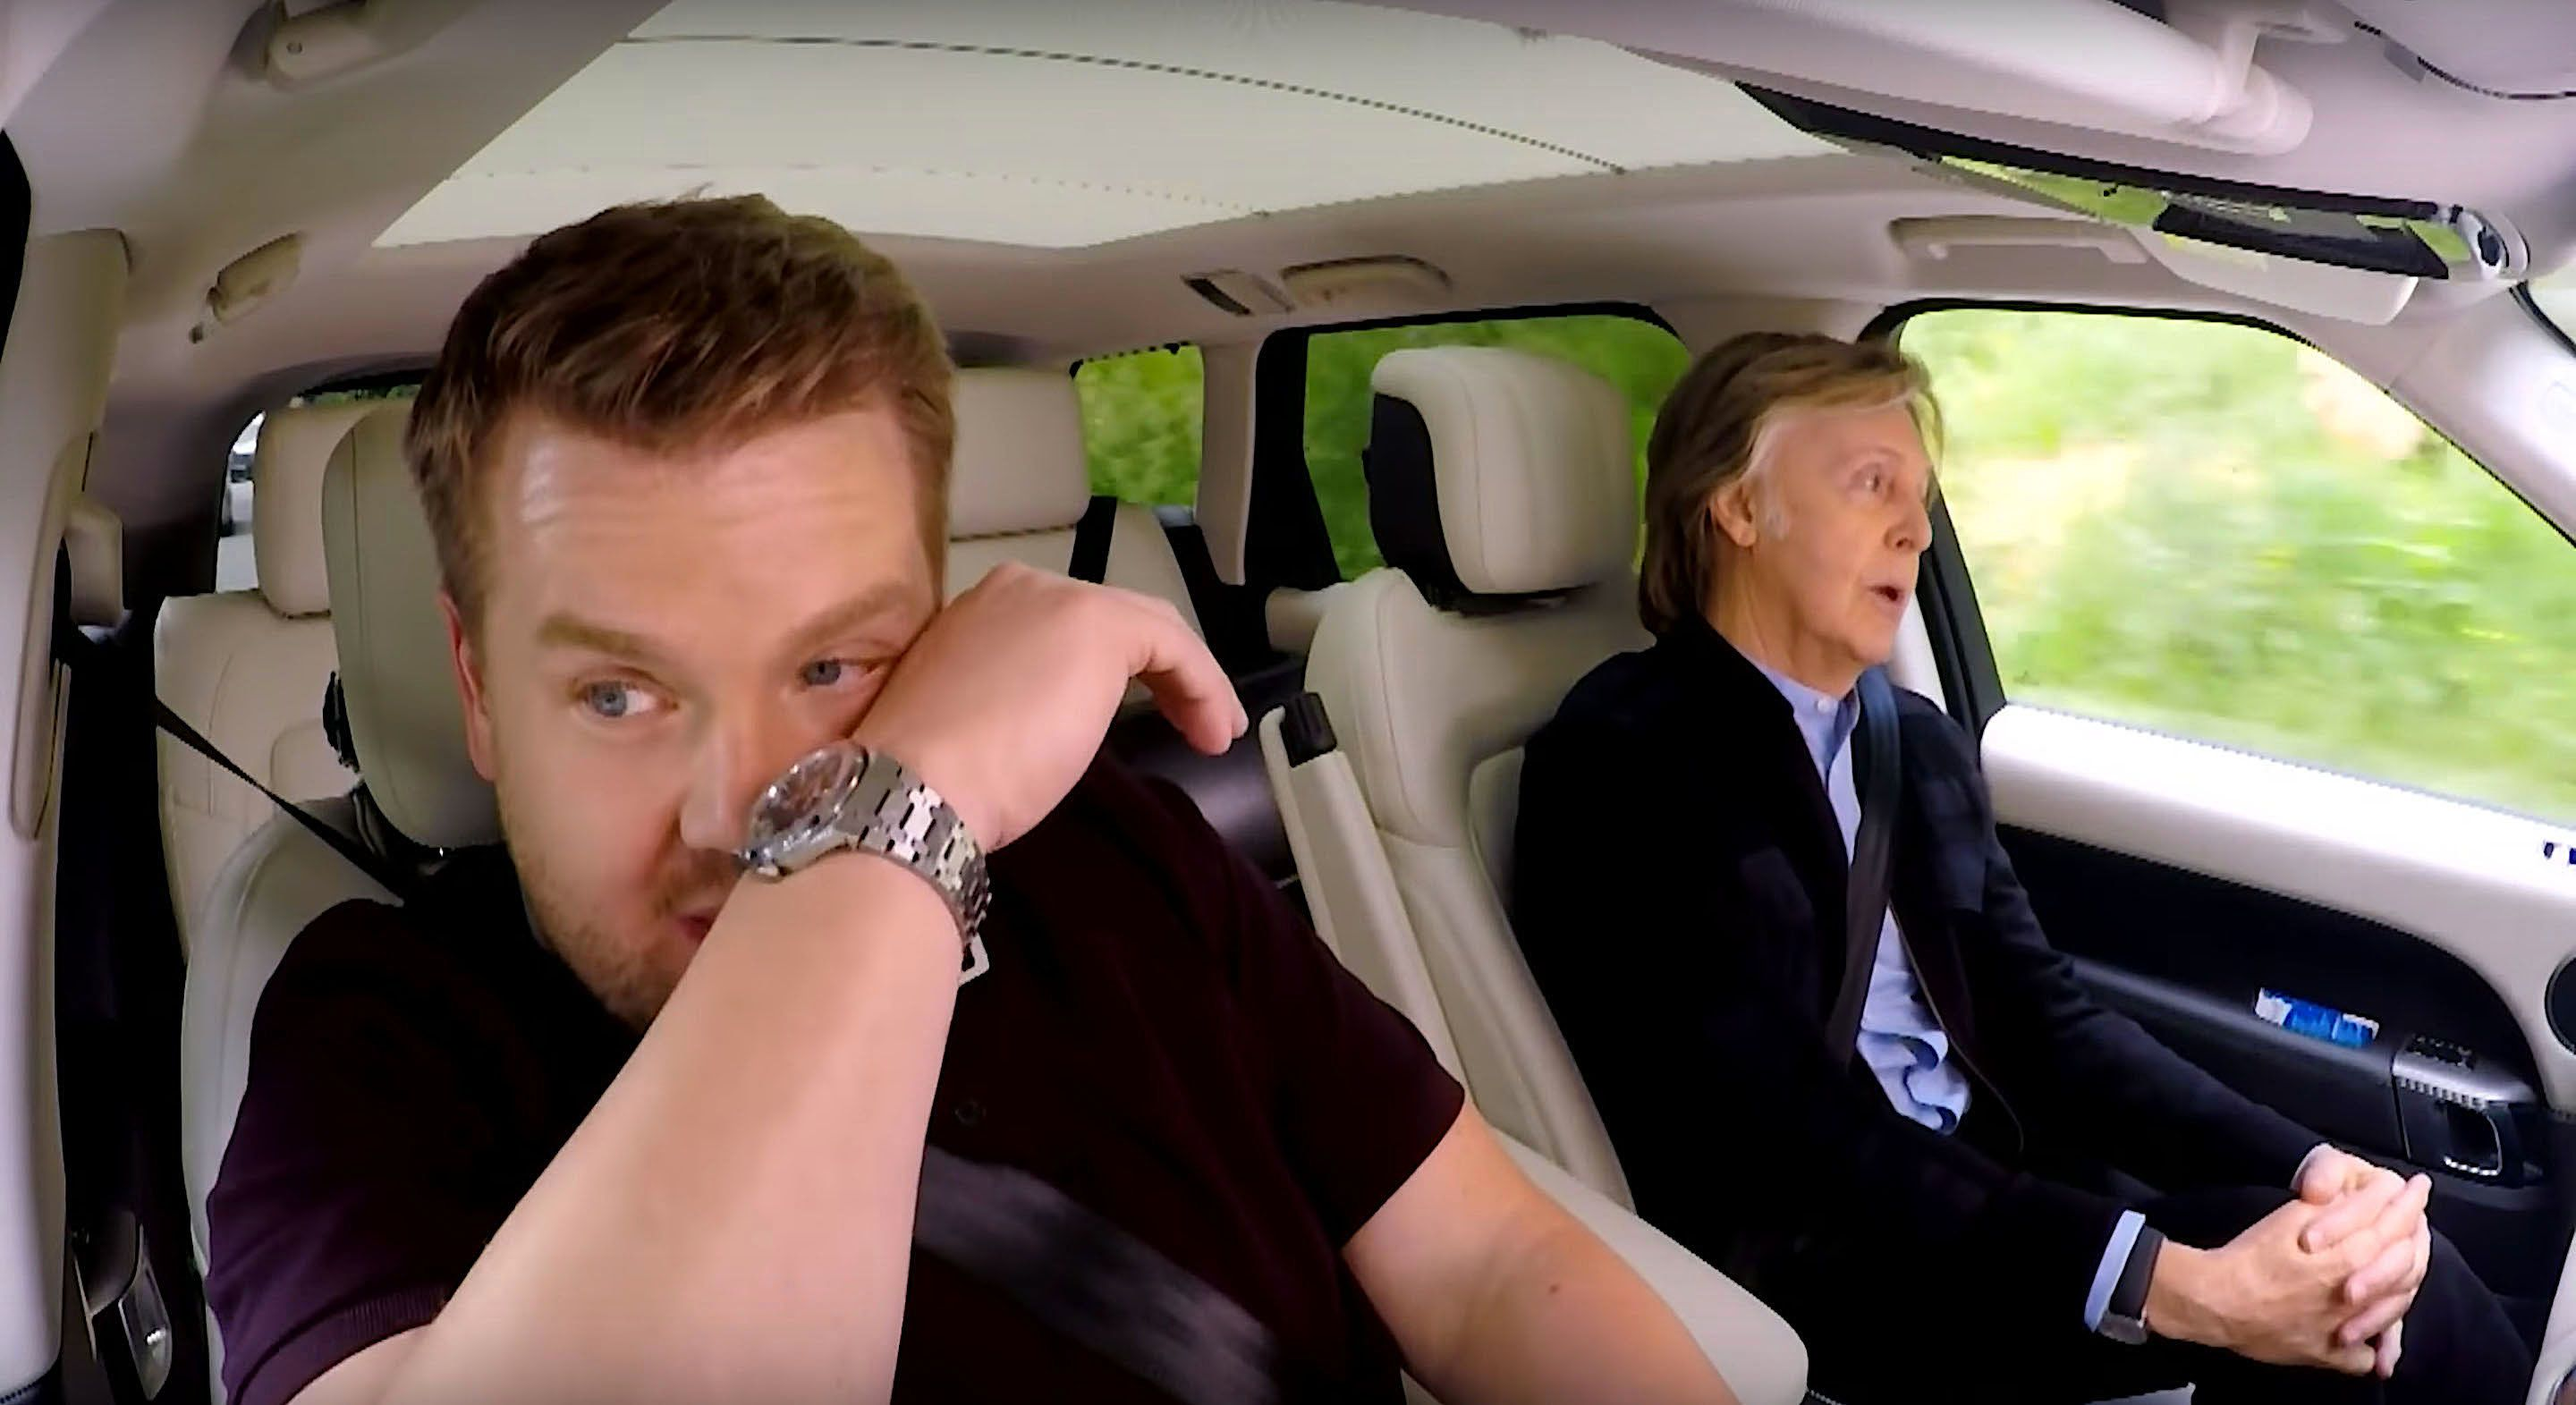 James Corden and Paul McCartney got emotional in Carpool Karaoke on The Late Late Show